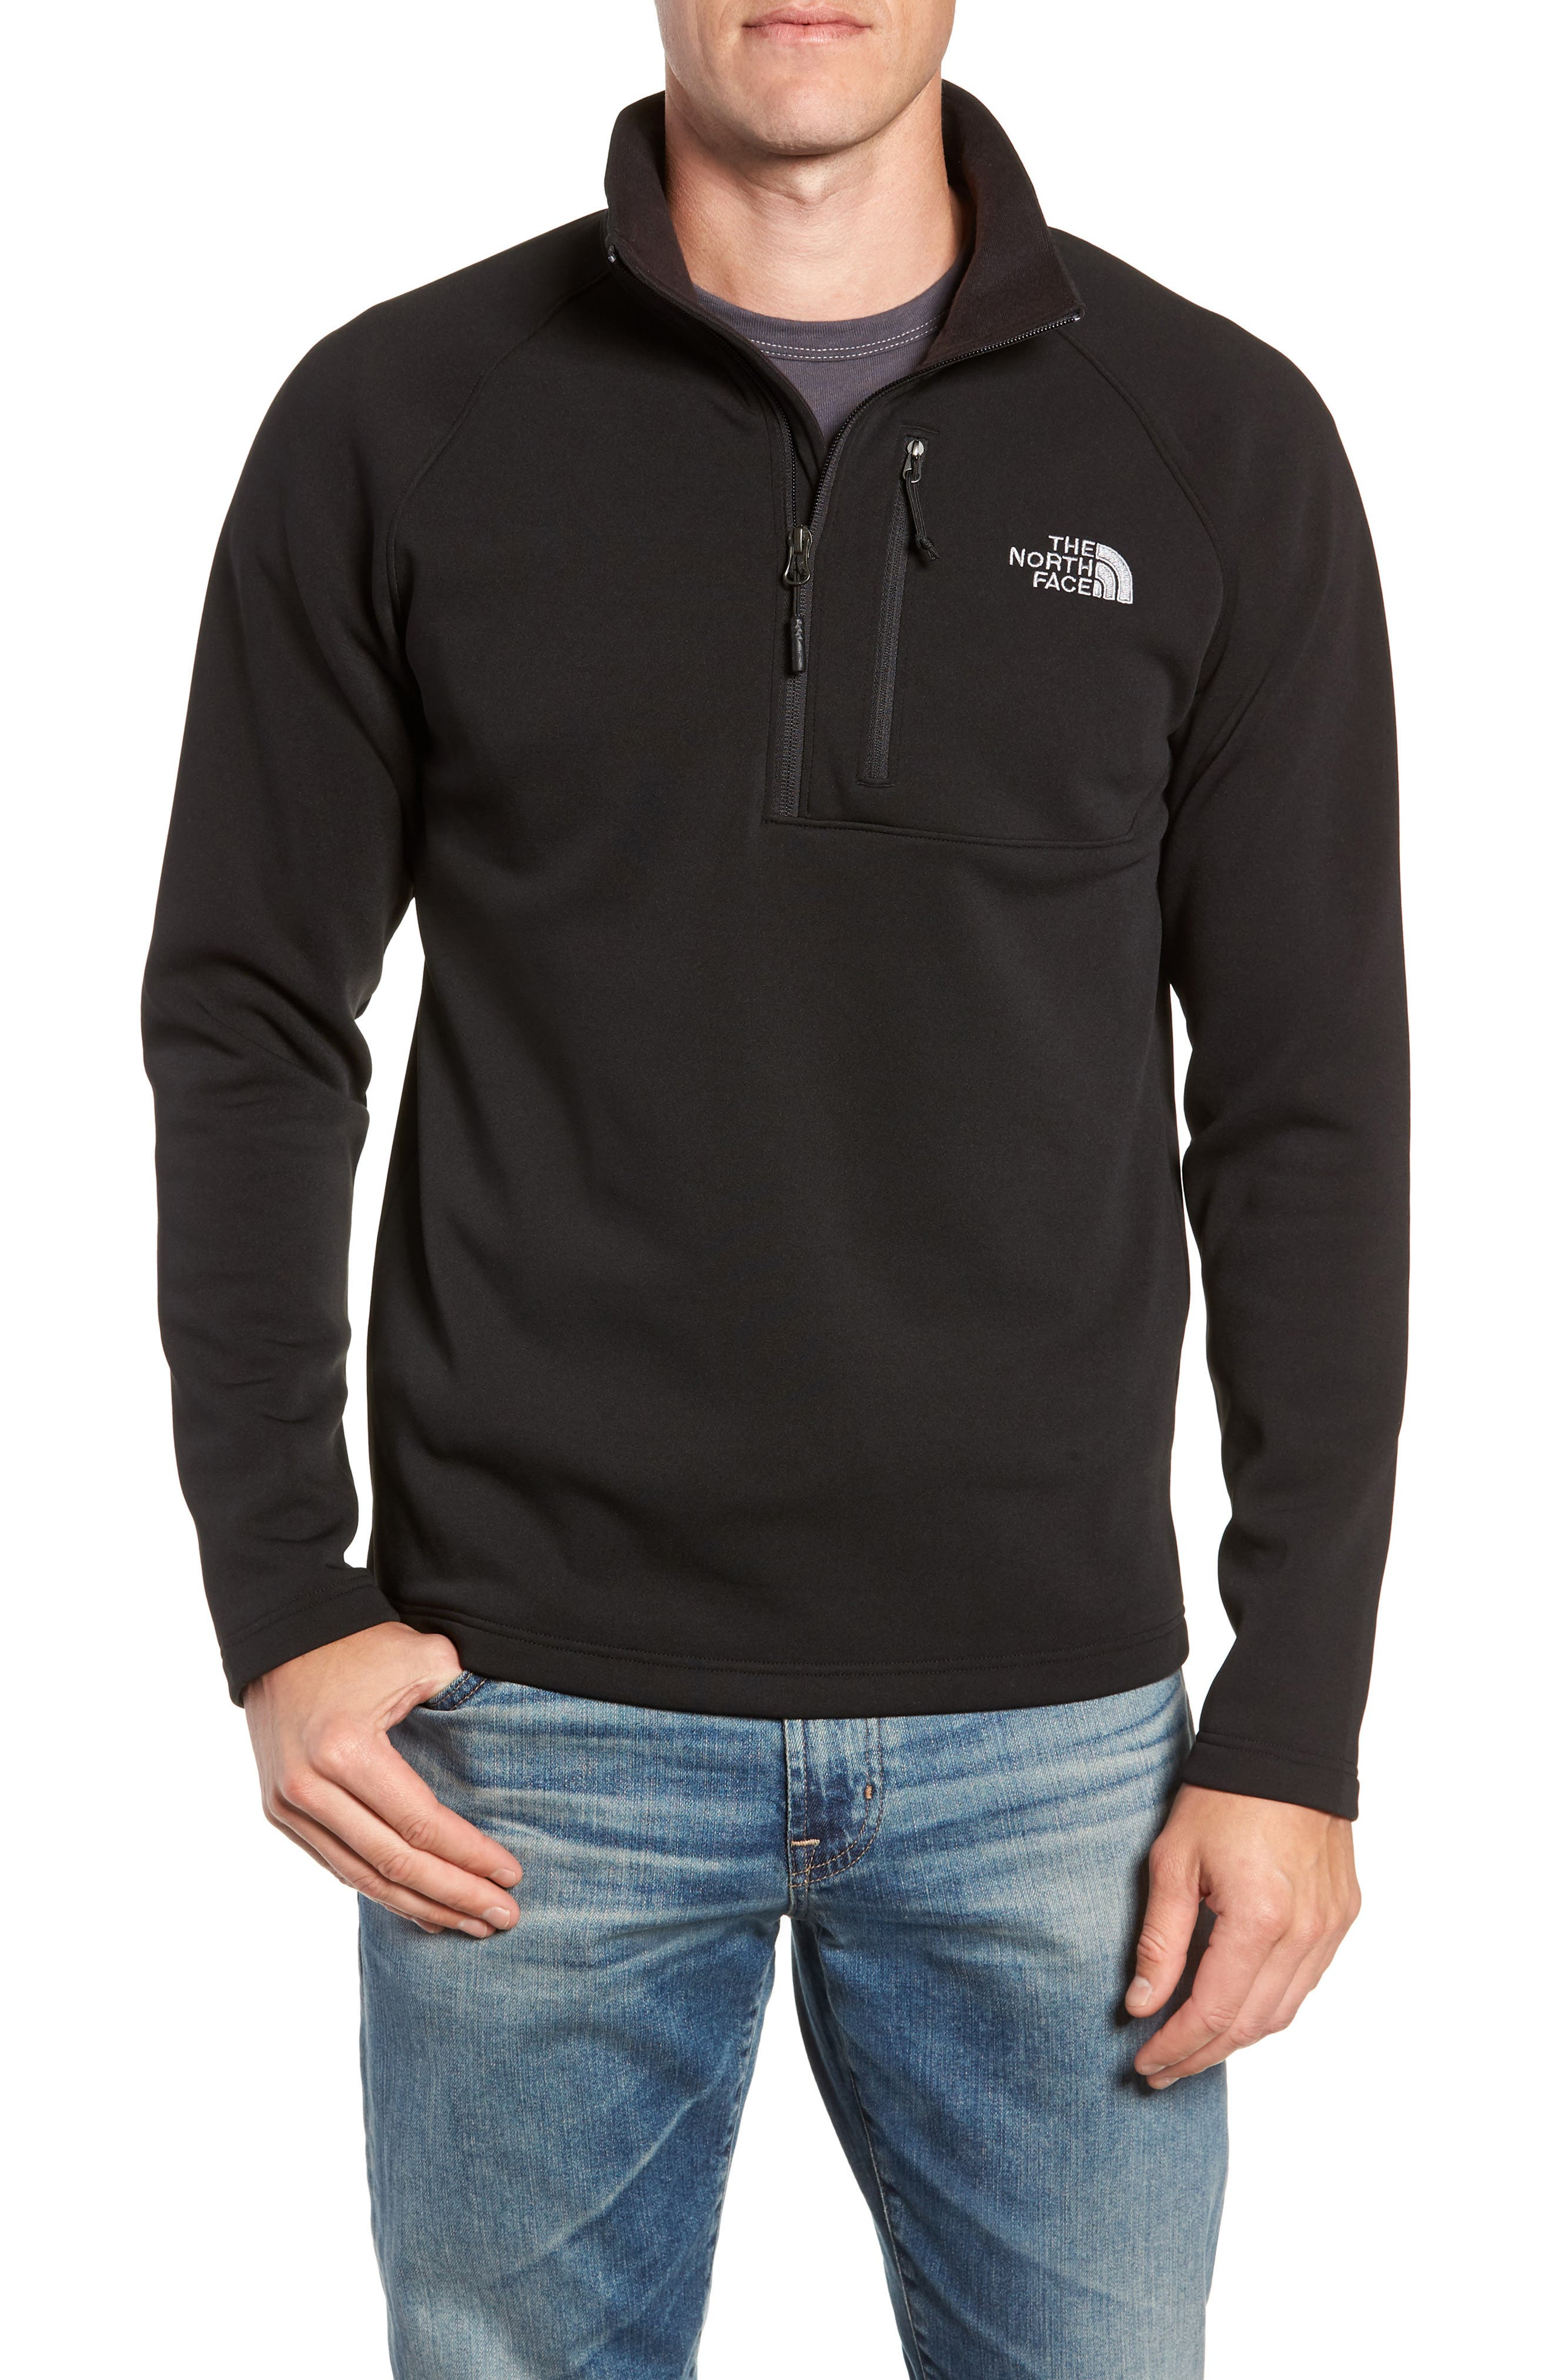 THE NORTH FACE Tenacious Quarter Zip Pullover, Main, color, 001